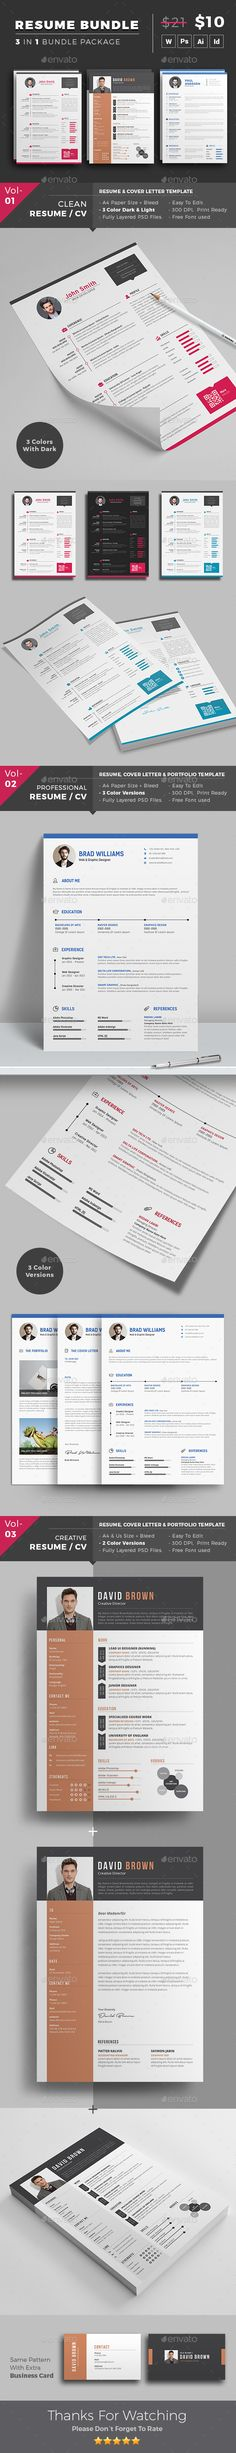 CV Word Ai illustrator, Cv template and Modern resume - illustrator resume